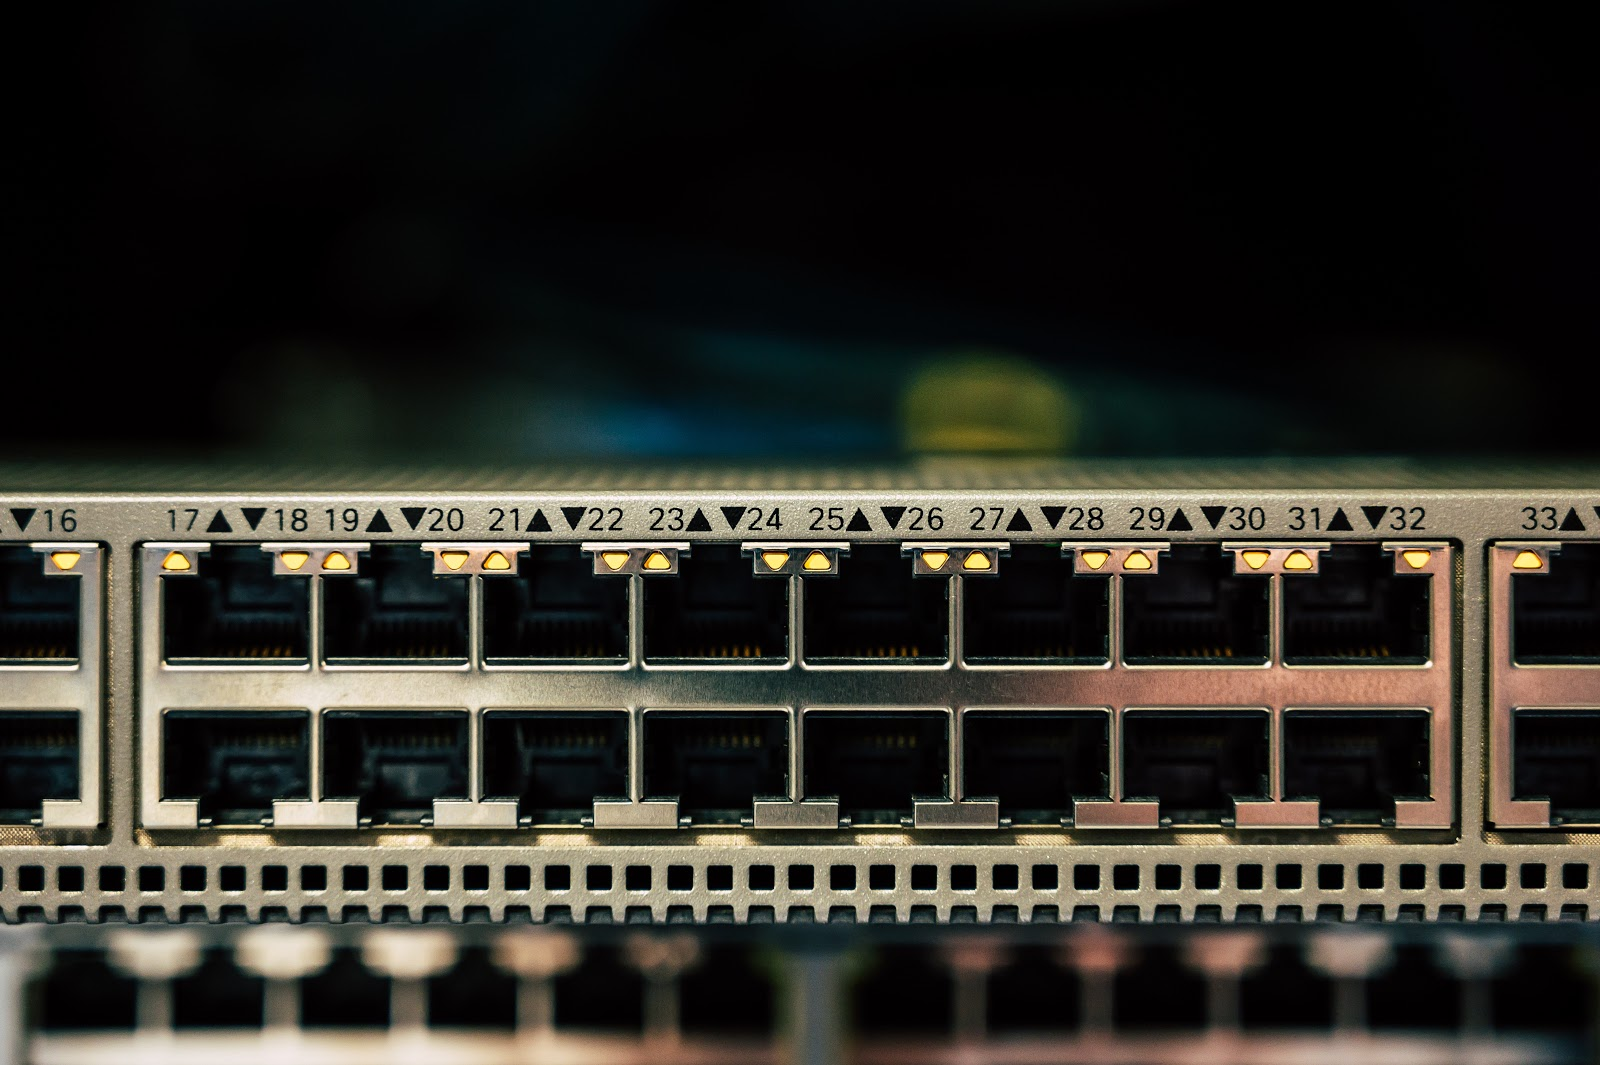 Close-up shot of a network switch